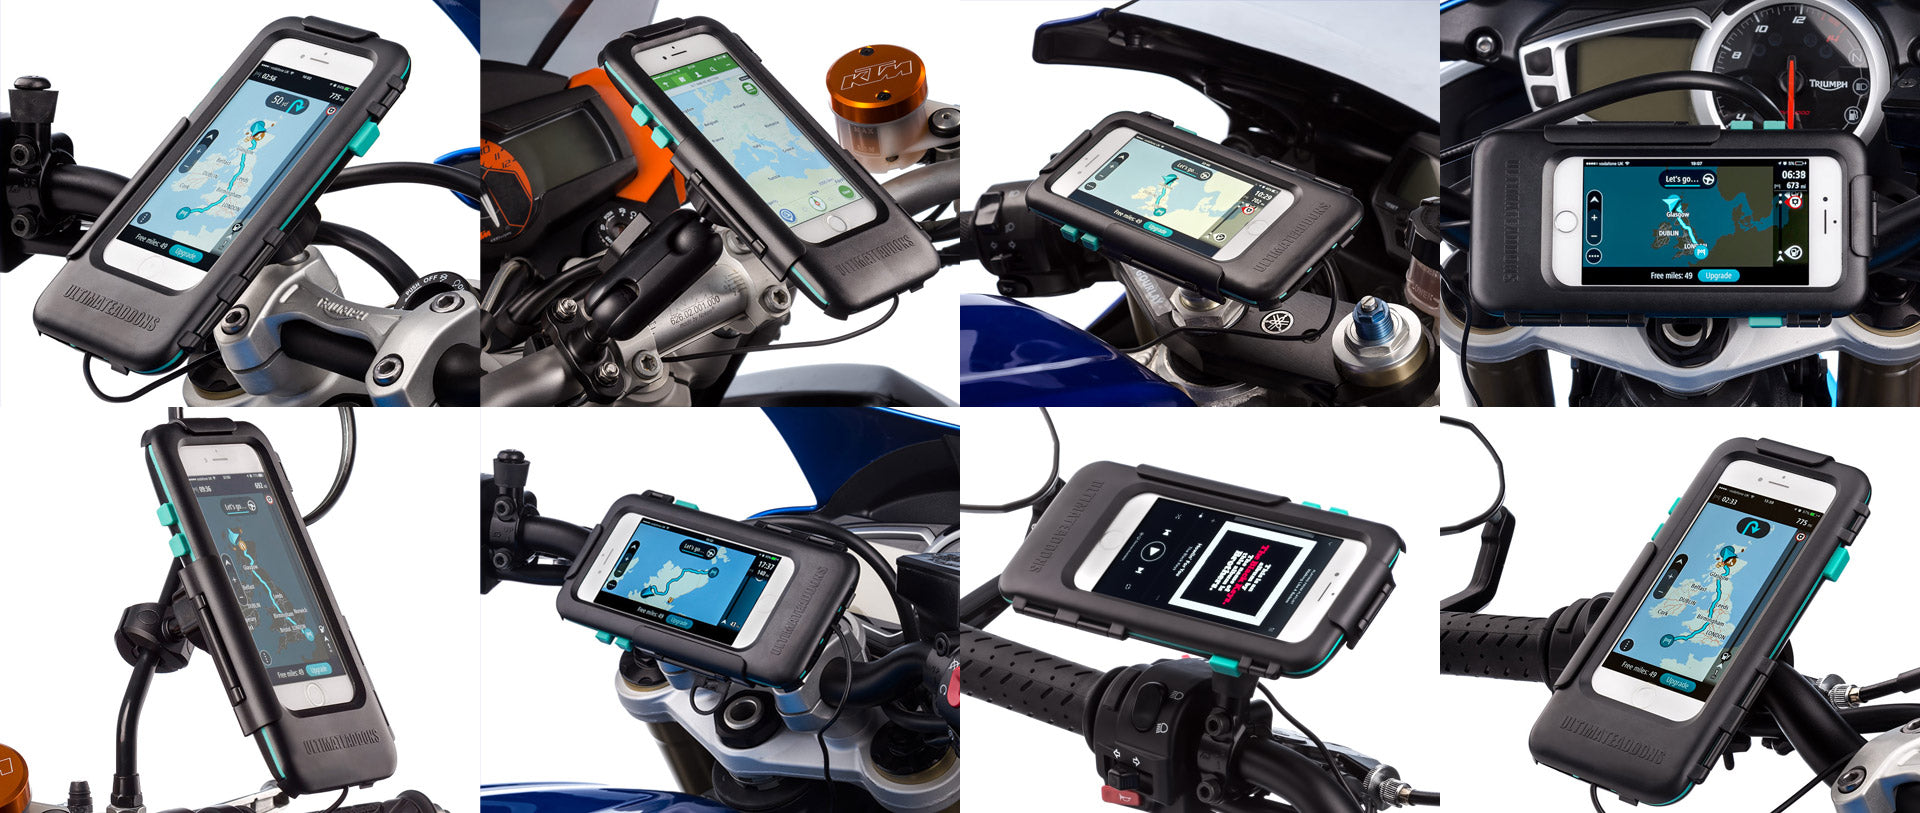 iPhone 7 Tough Motorcycle Case.